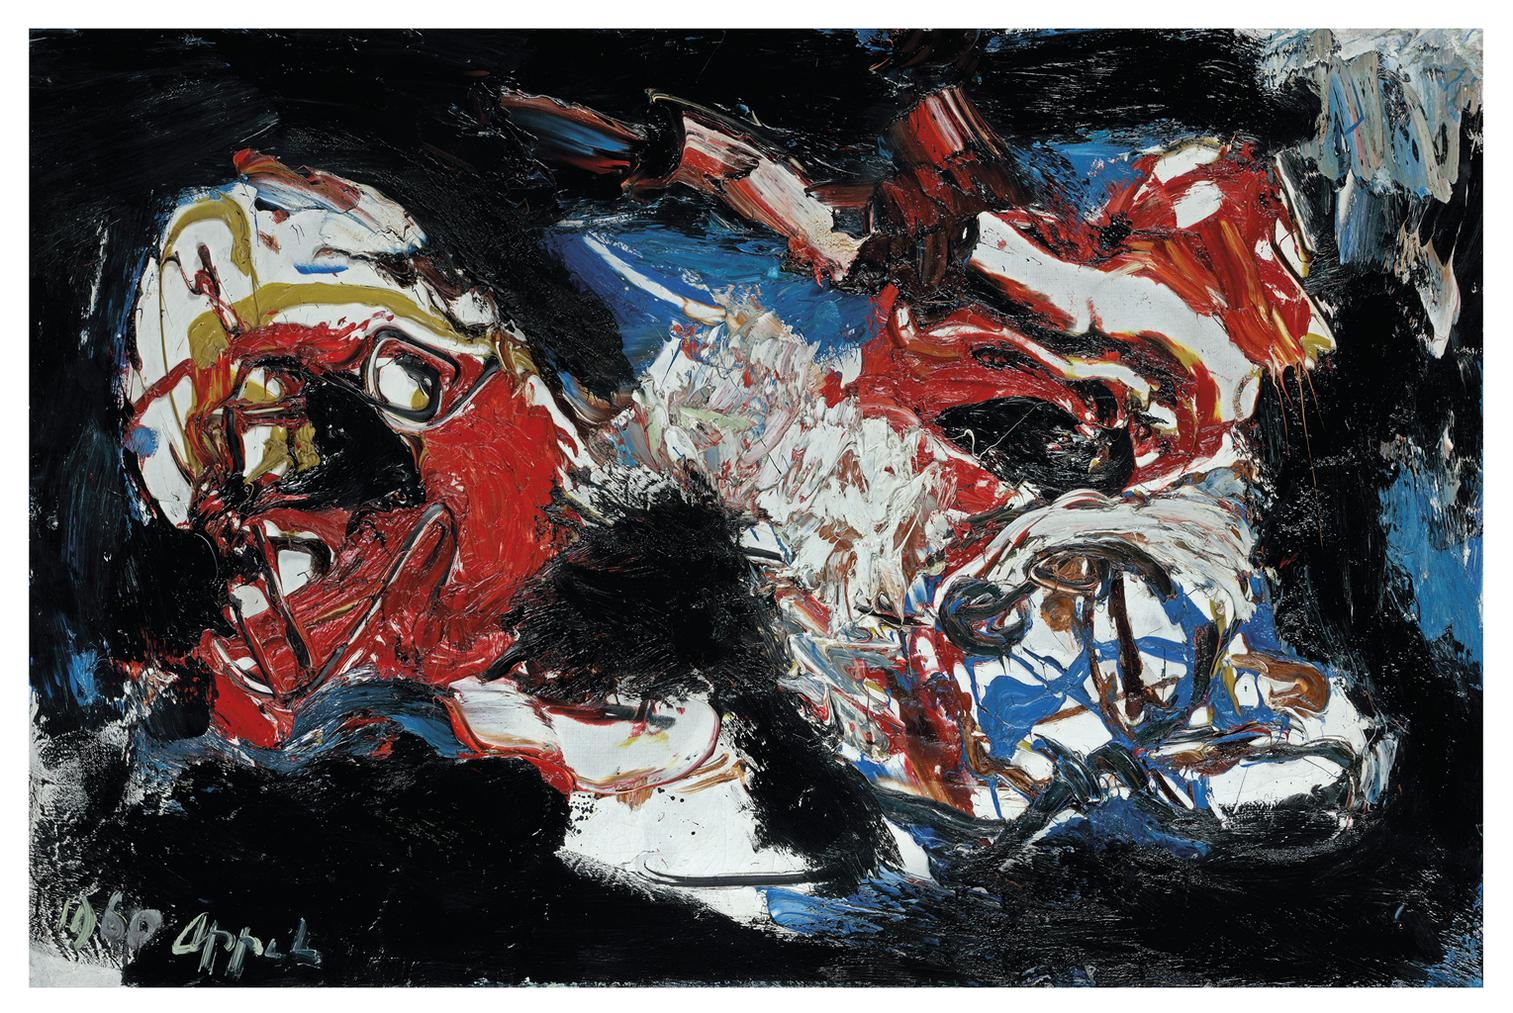 Karel Appel-Tetes Dans Tempete (Heads In The Tempest)-1960